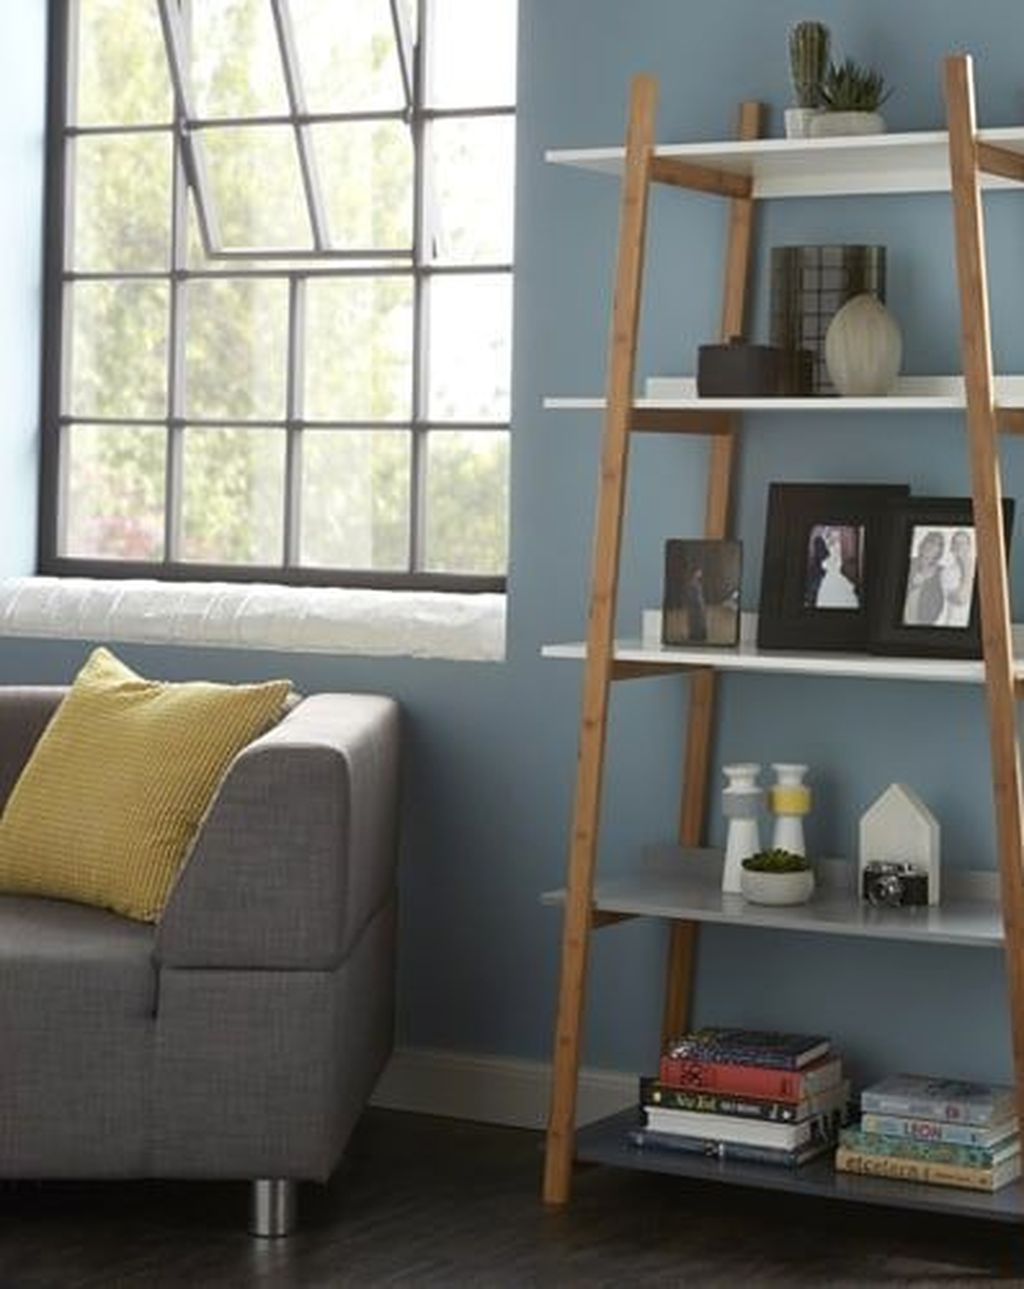 Interesting Living Rooms Design Ideas With Shelving Storage Units 39